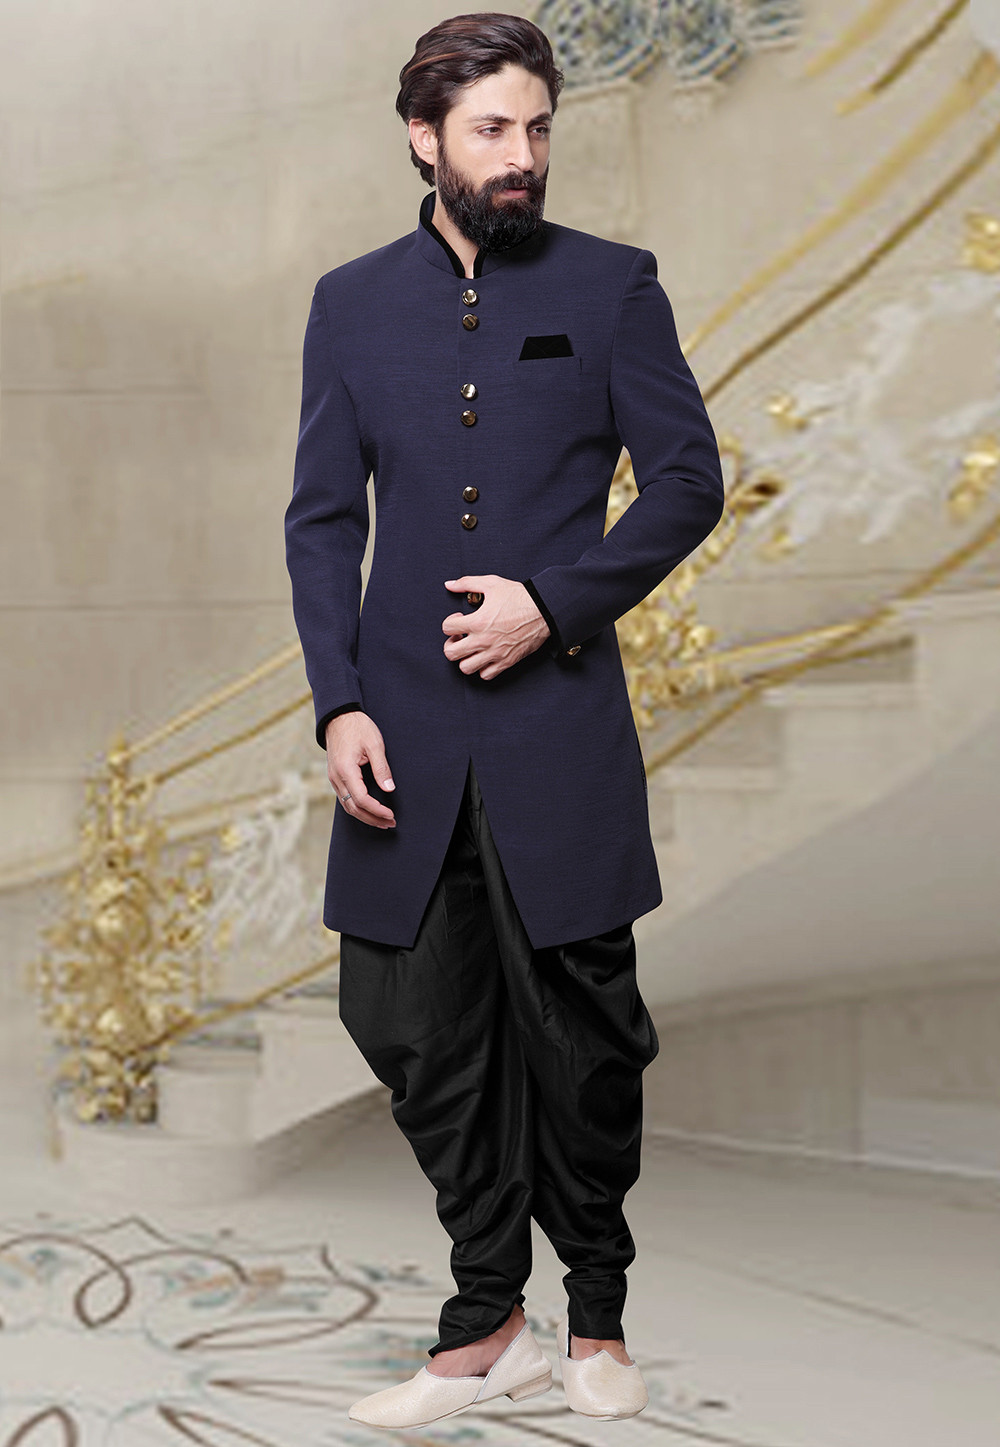 All about mens wedding sherwani designs utsavpedia for Best mens dress shirts under 50